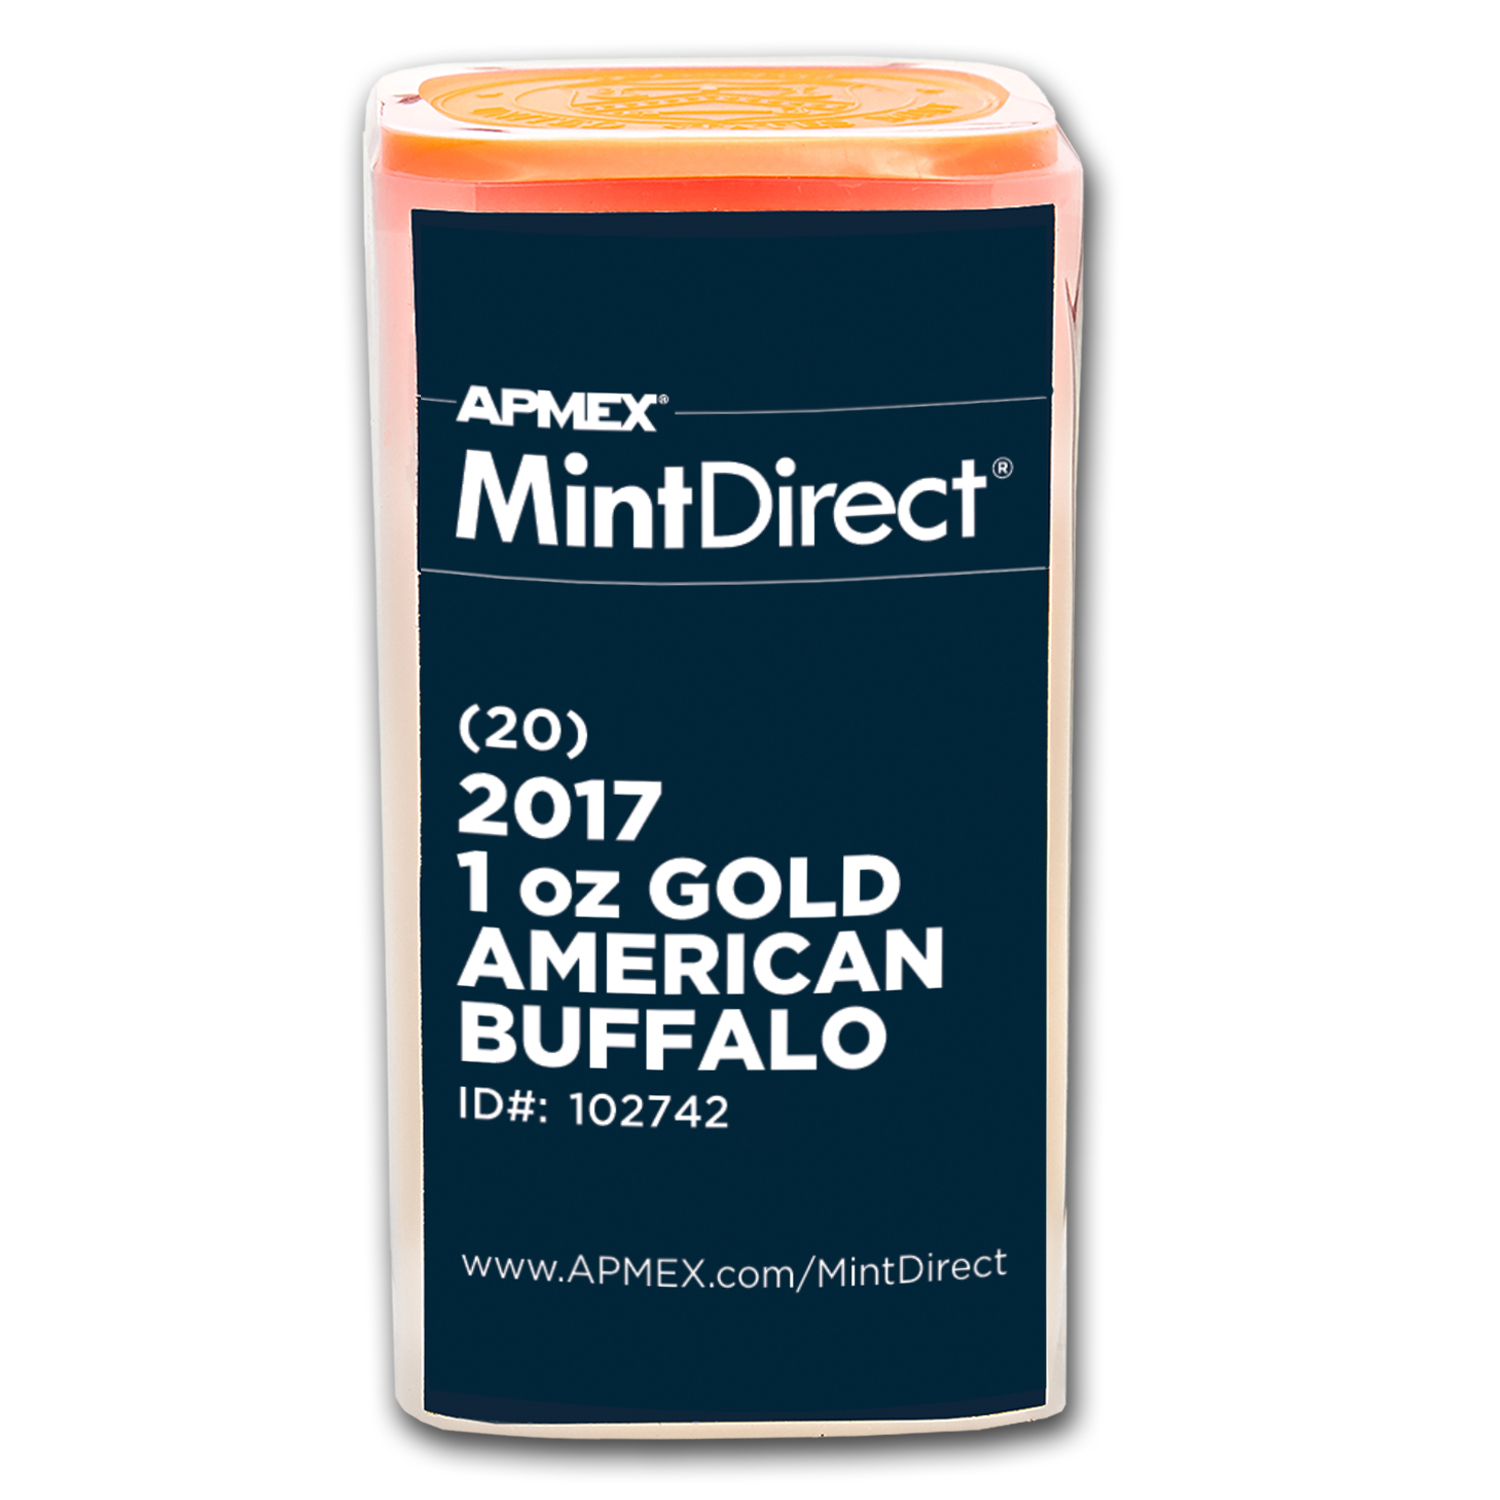 2017 1 oz Gold American Buffalo (20-Coin MintDirect® Tube)